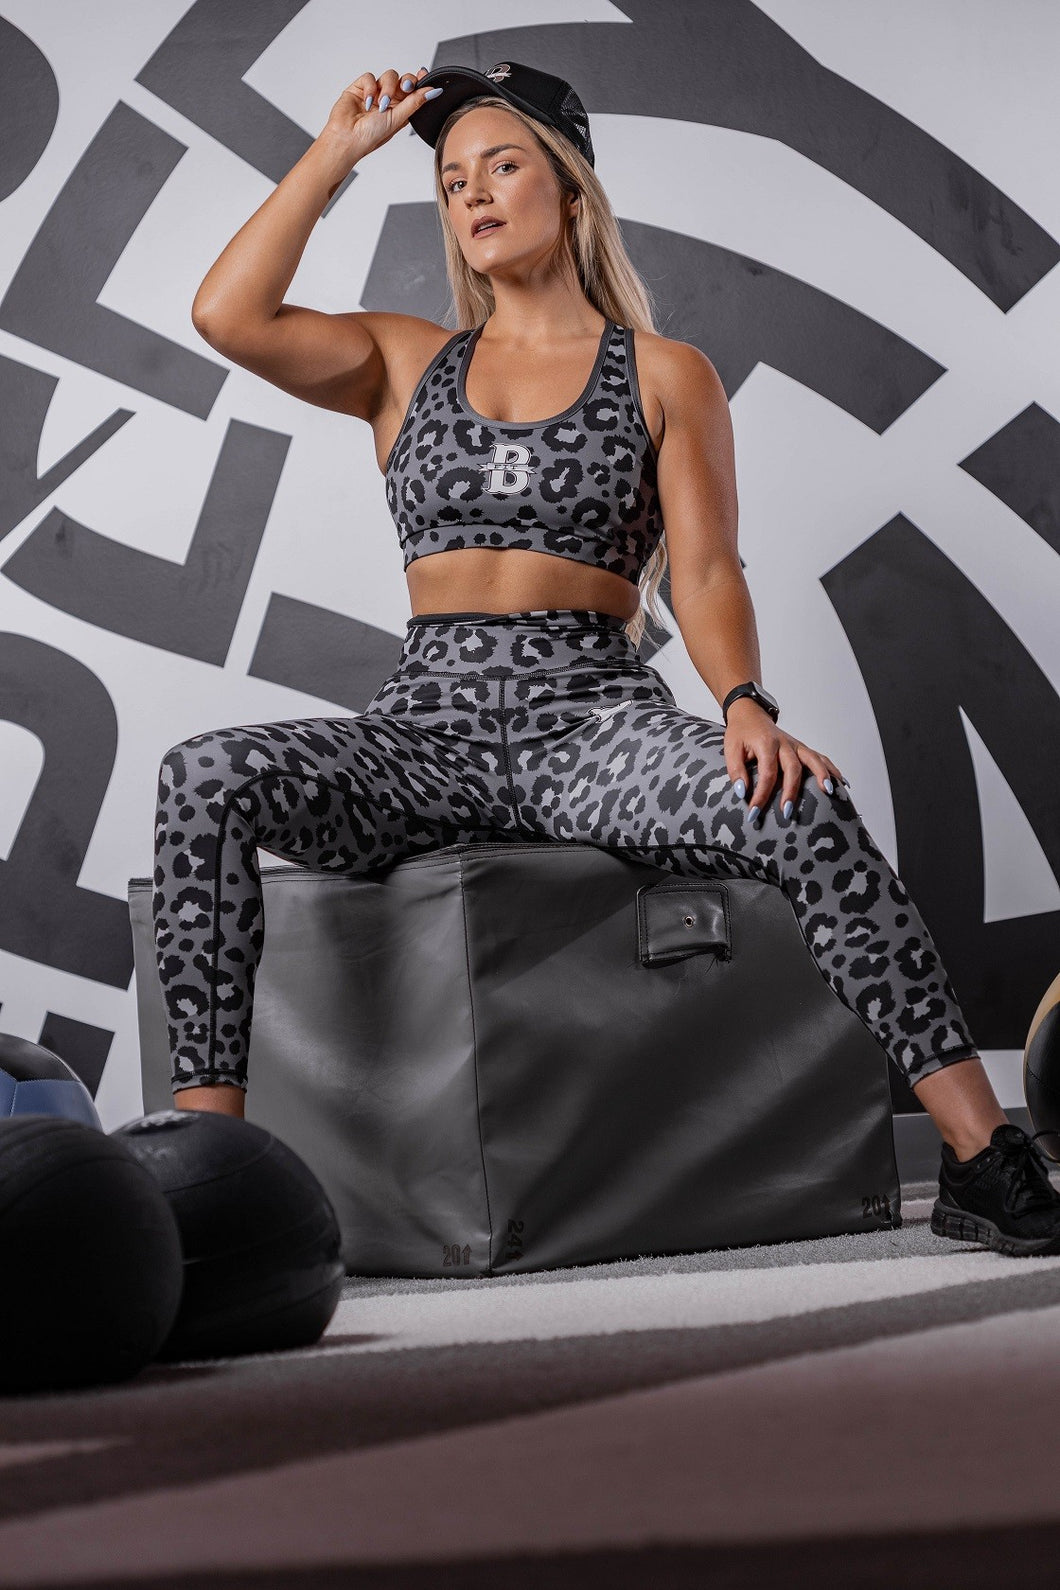 Women's Leopard Print Leggings and Sports Bra Set - Grey